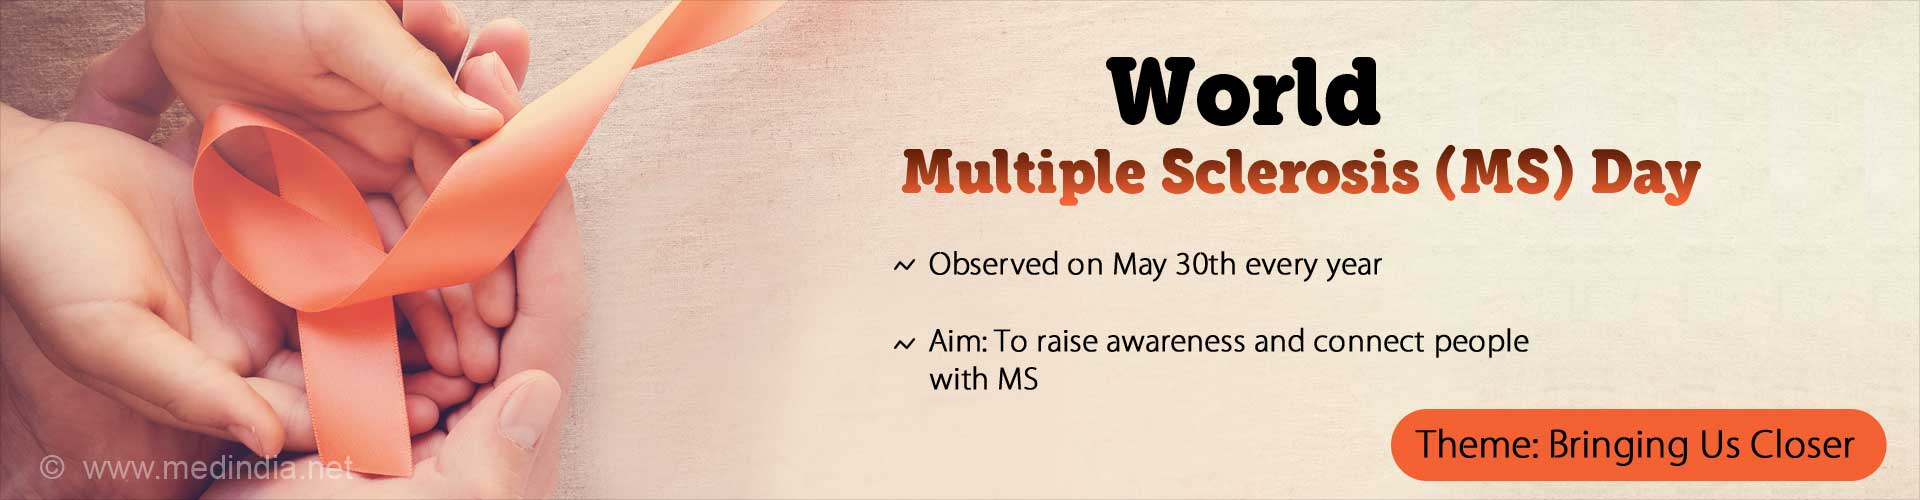 World Multiple Sclerosis (MS) Day. Observed on May 30th every year. Aim: To raise awareness and connect people with MS. Theme: Bringing Us Closer